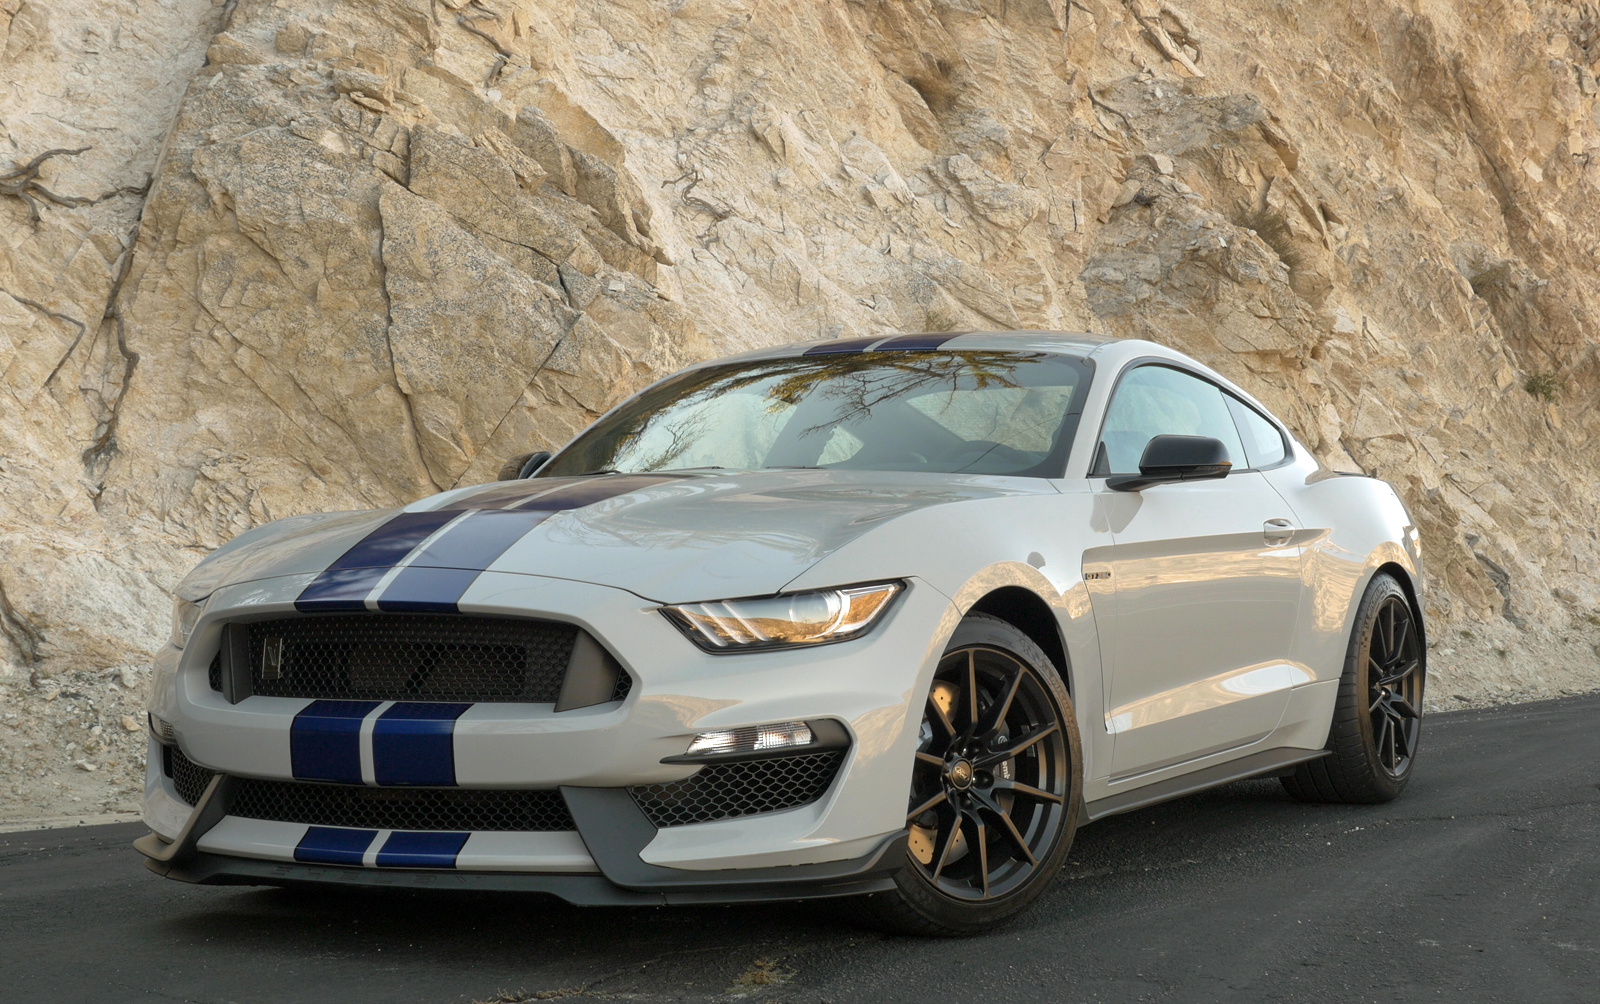 Ford Mustang Shelby Gt350 2016 Autoguide Com Car Of The